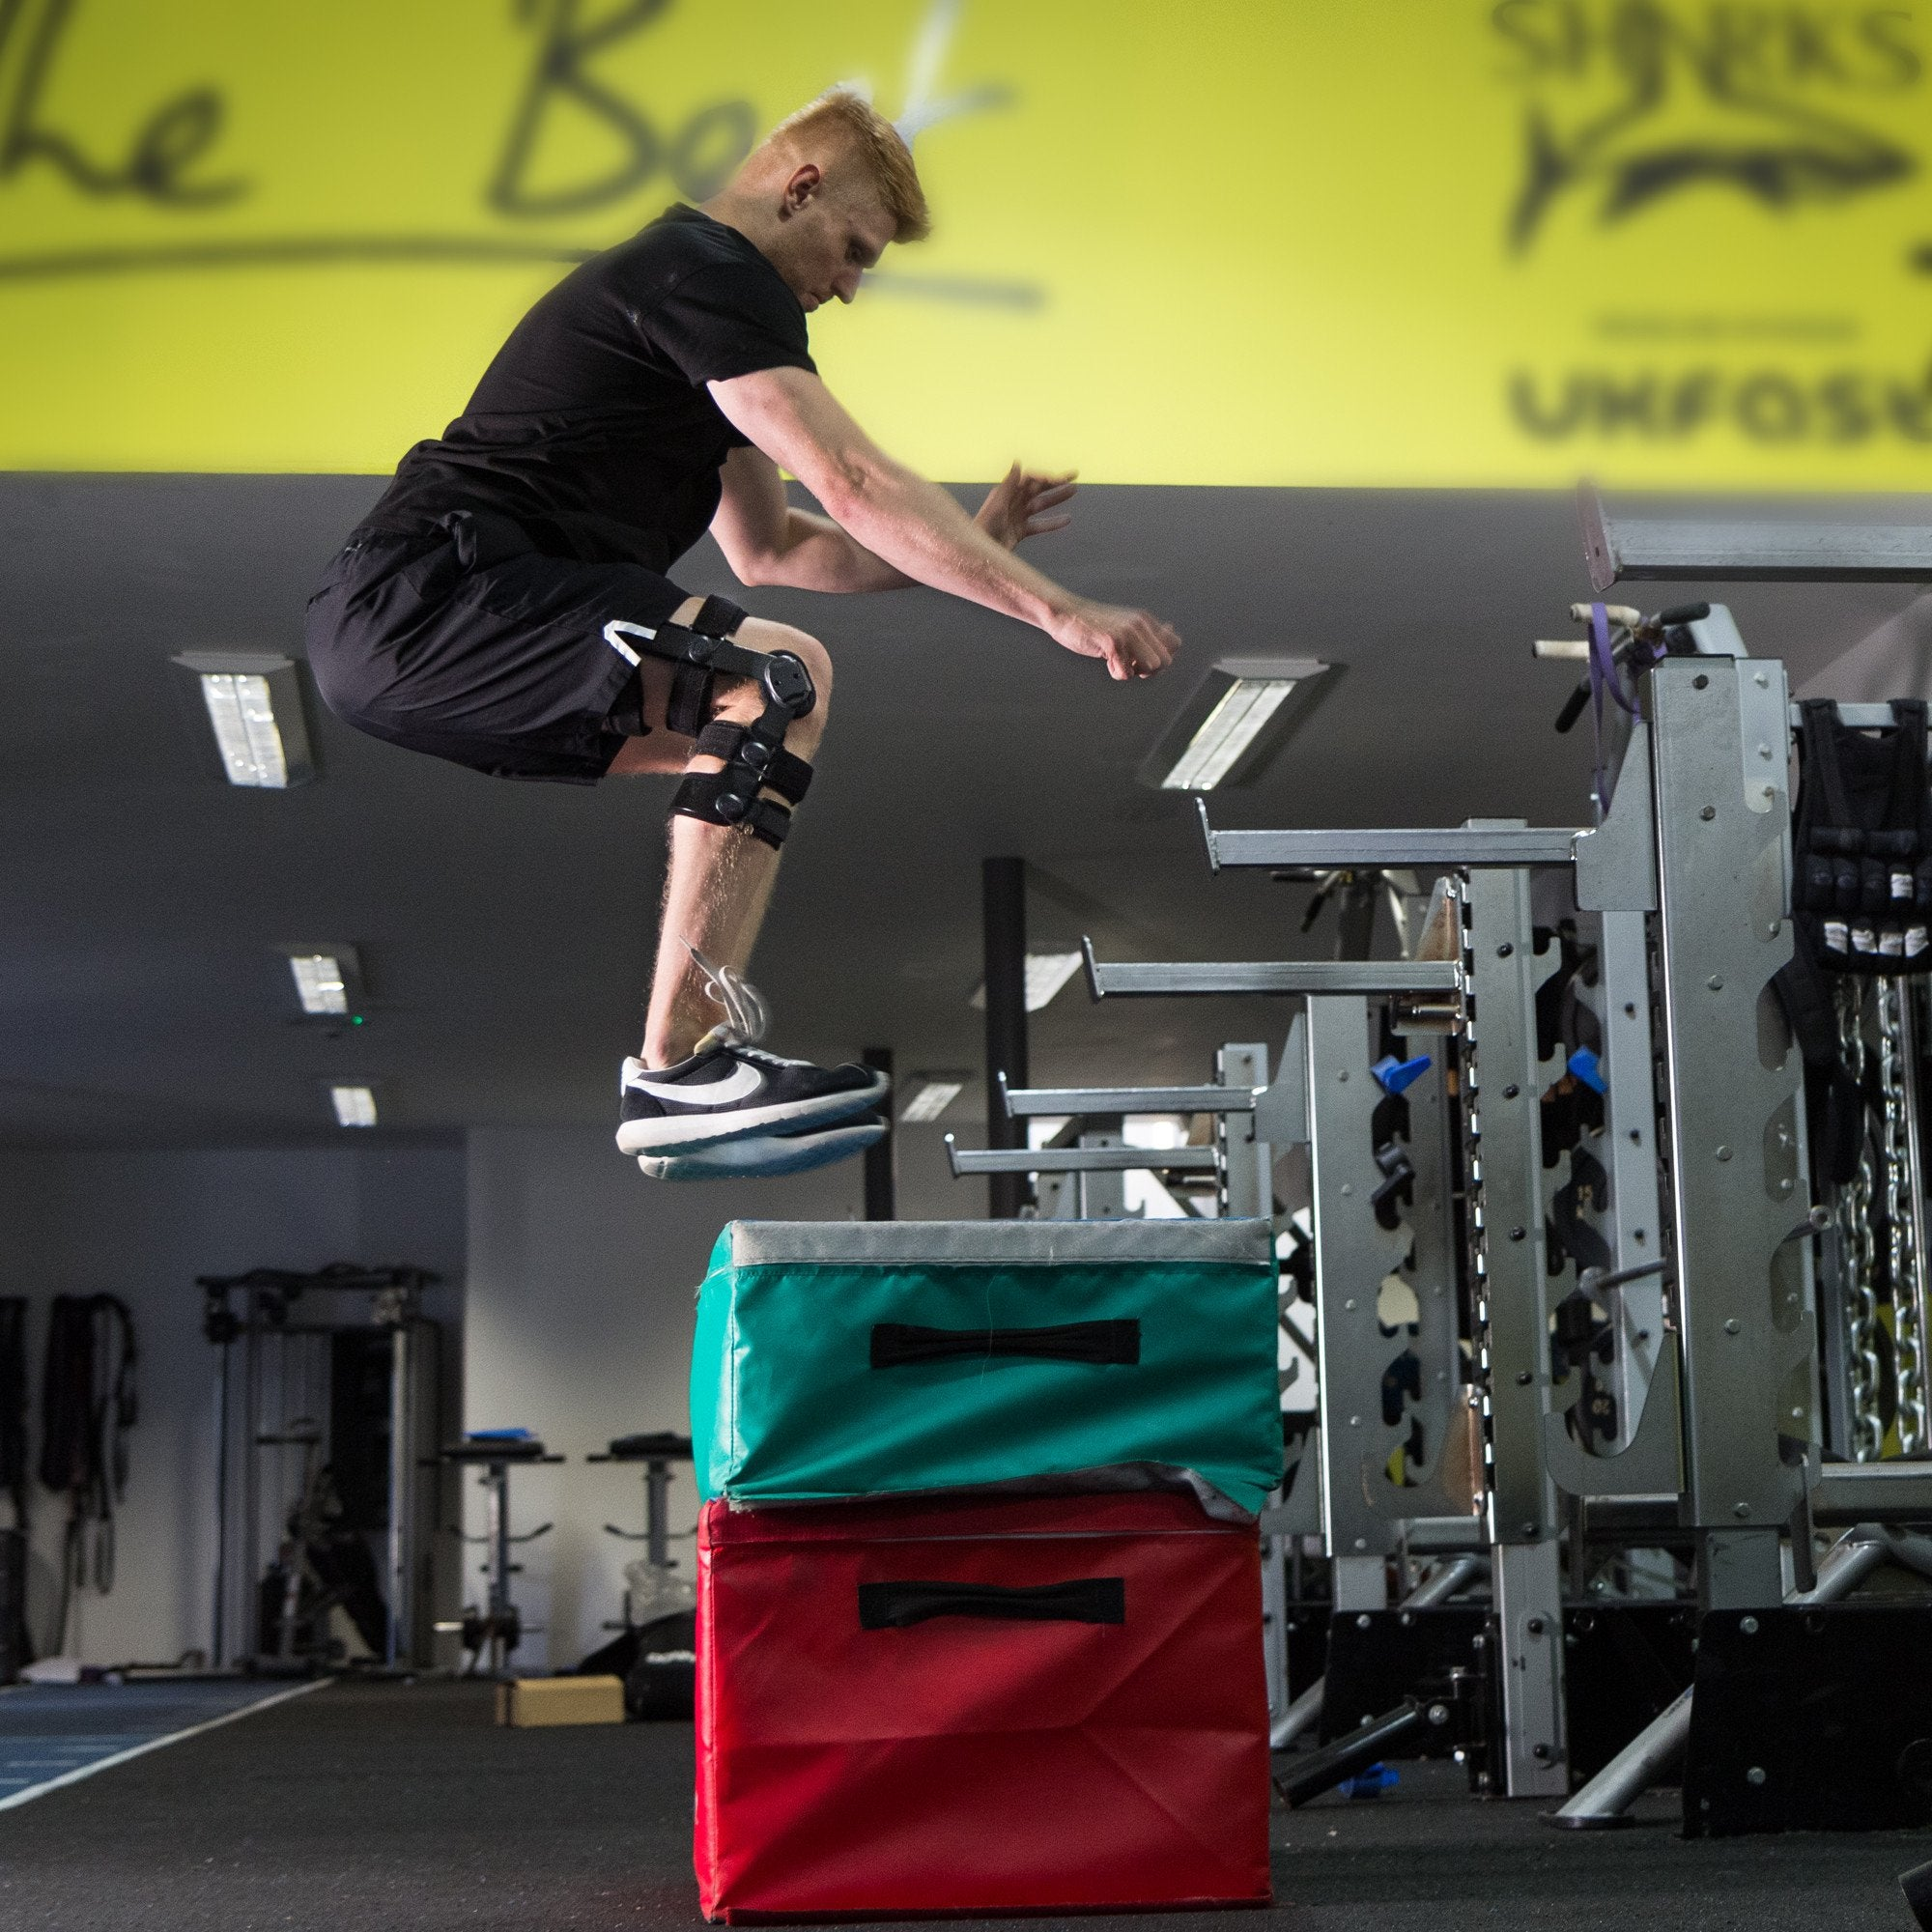 Athlete doing box jump wearing the Benecare Pro Action Knee Brace.